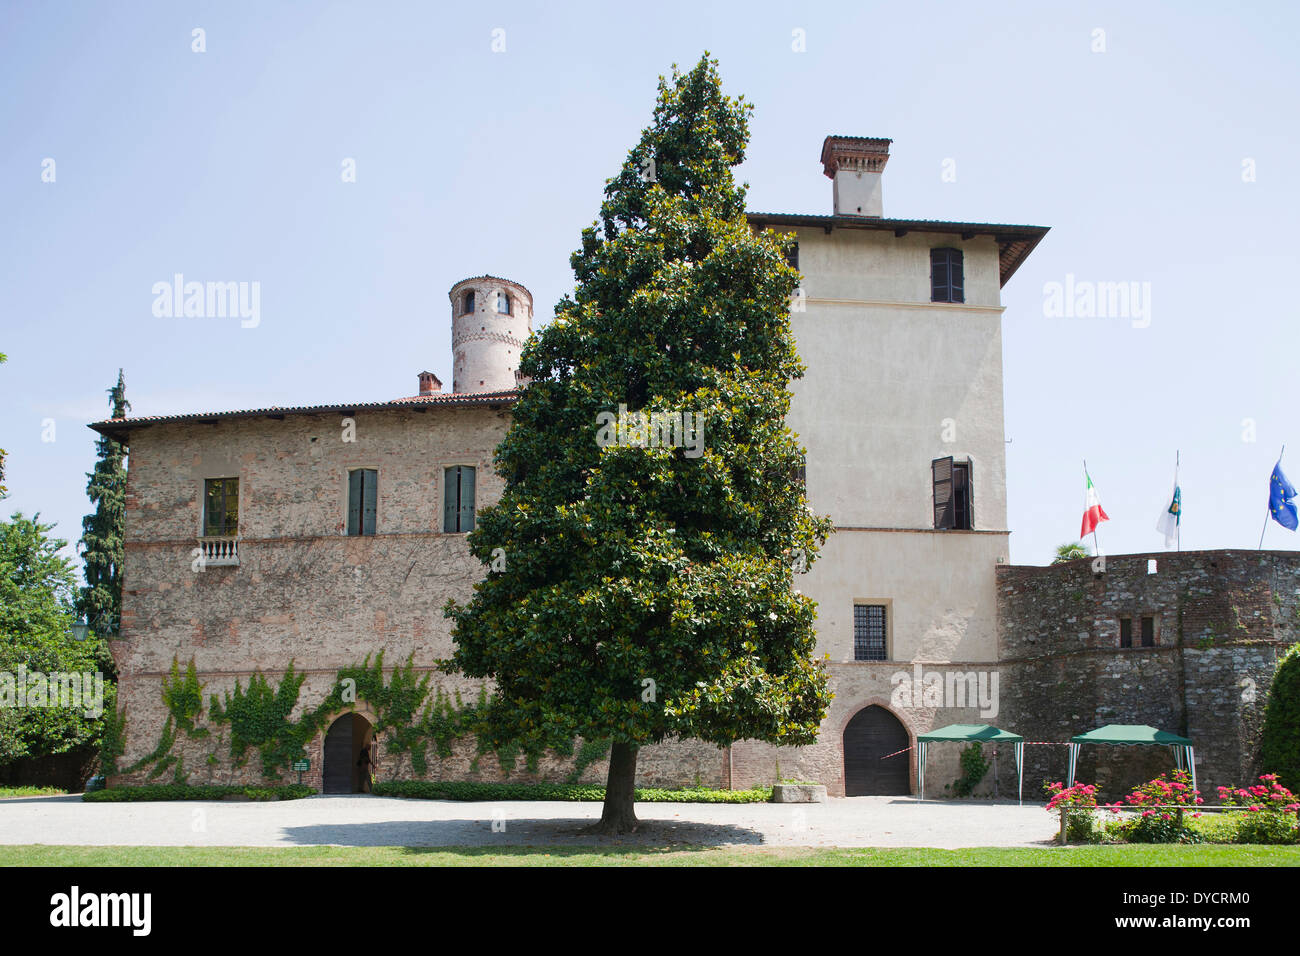 castle of the manta, cuneo, langhe, piemonte, italy, europe Stock Photo